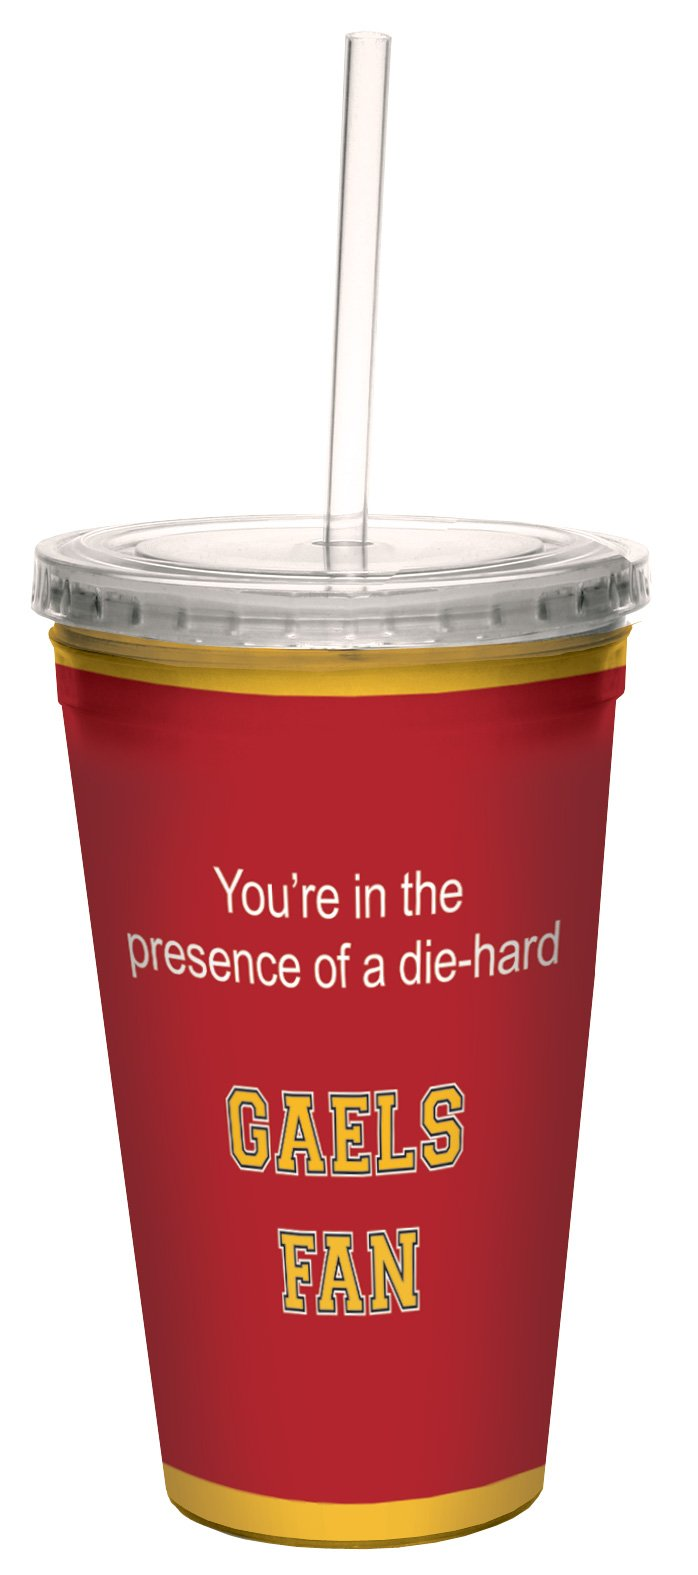 Tree-Free Greetings cc34740 Gaels College Basketball Artful Traveler Double-Walled Cool Cup with Reusable Straw, 16-Ounce by Tree-Free Greetings (Image #1)